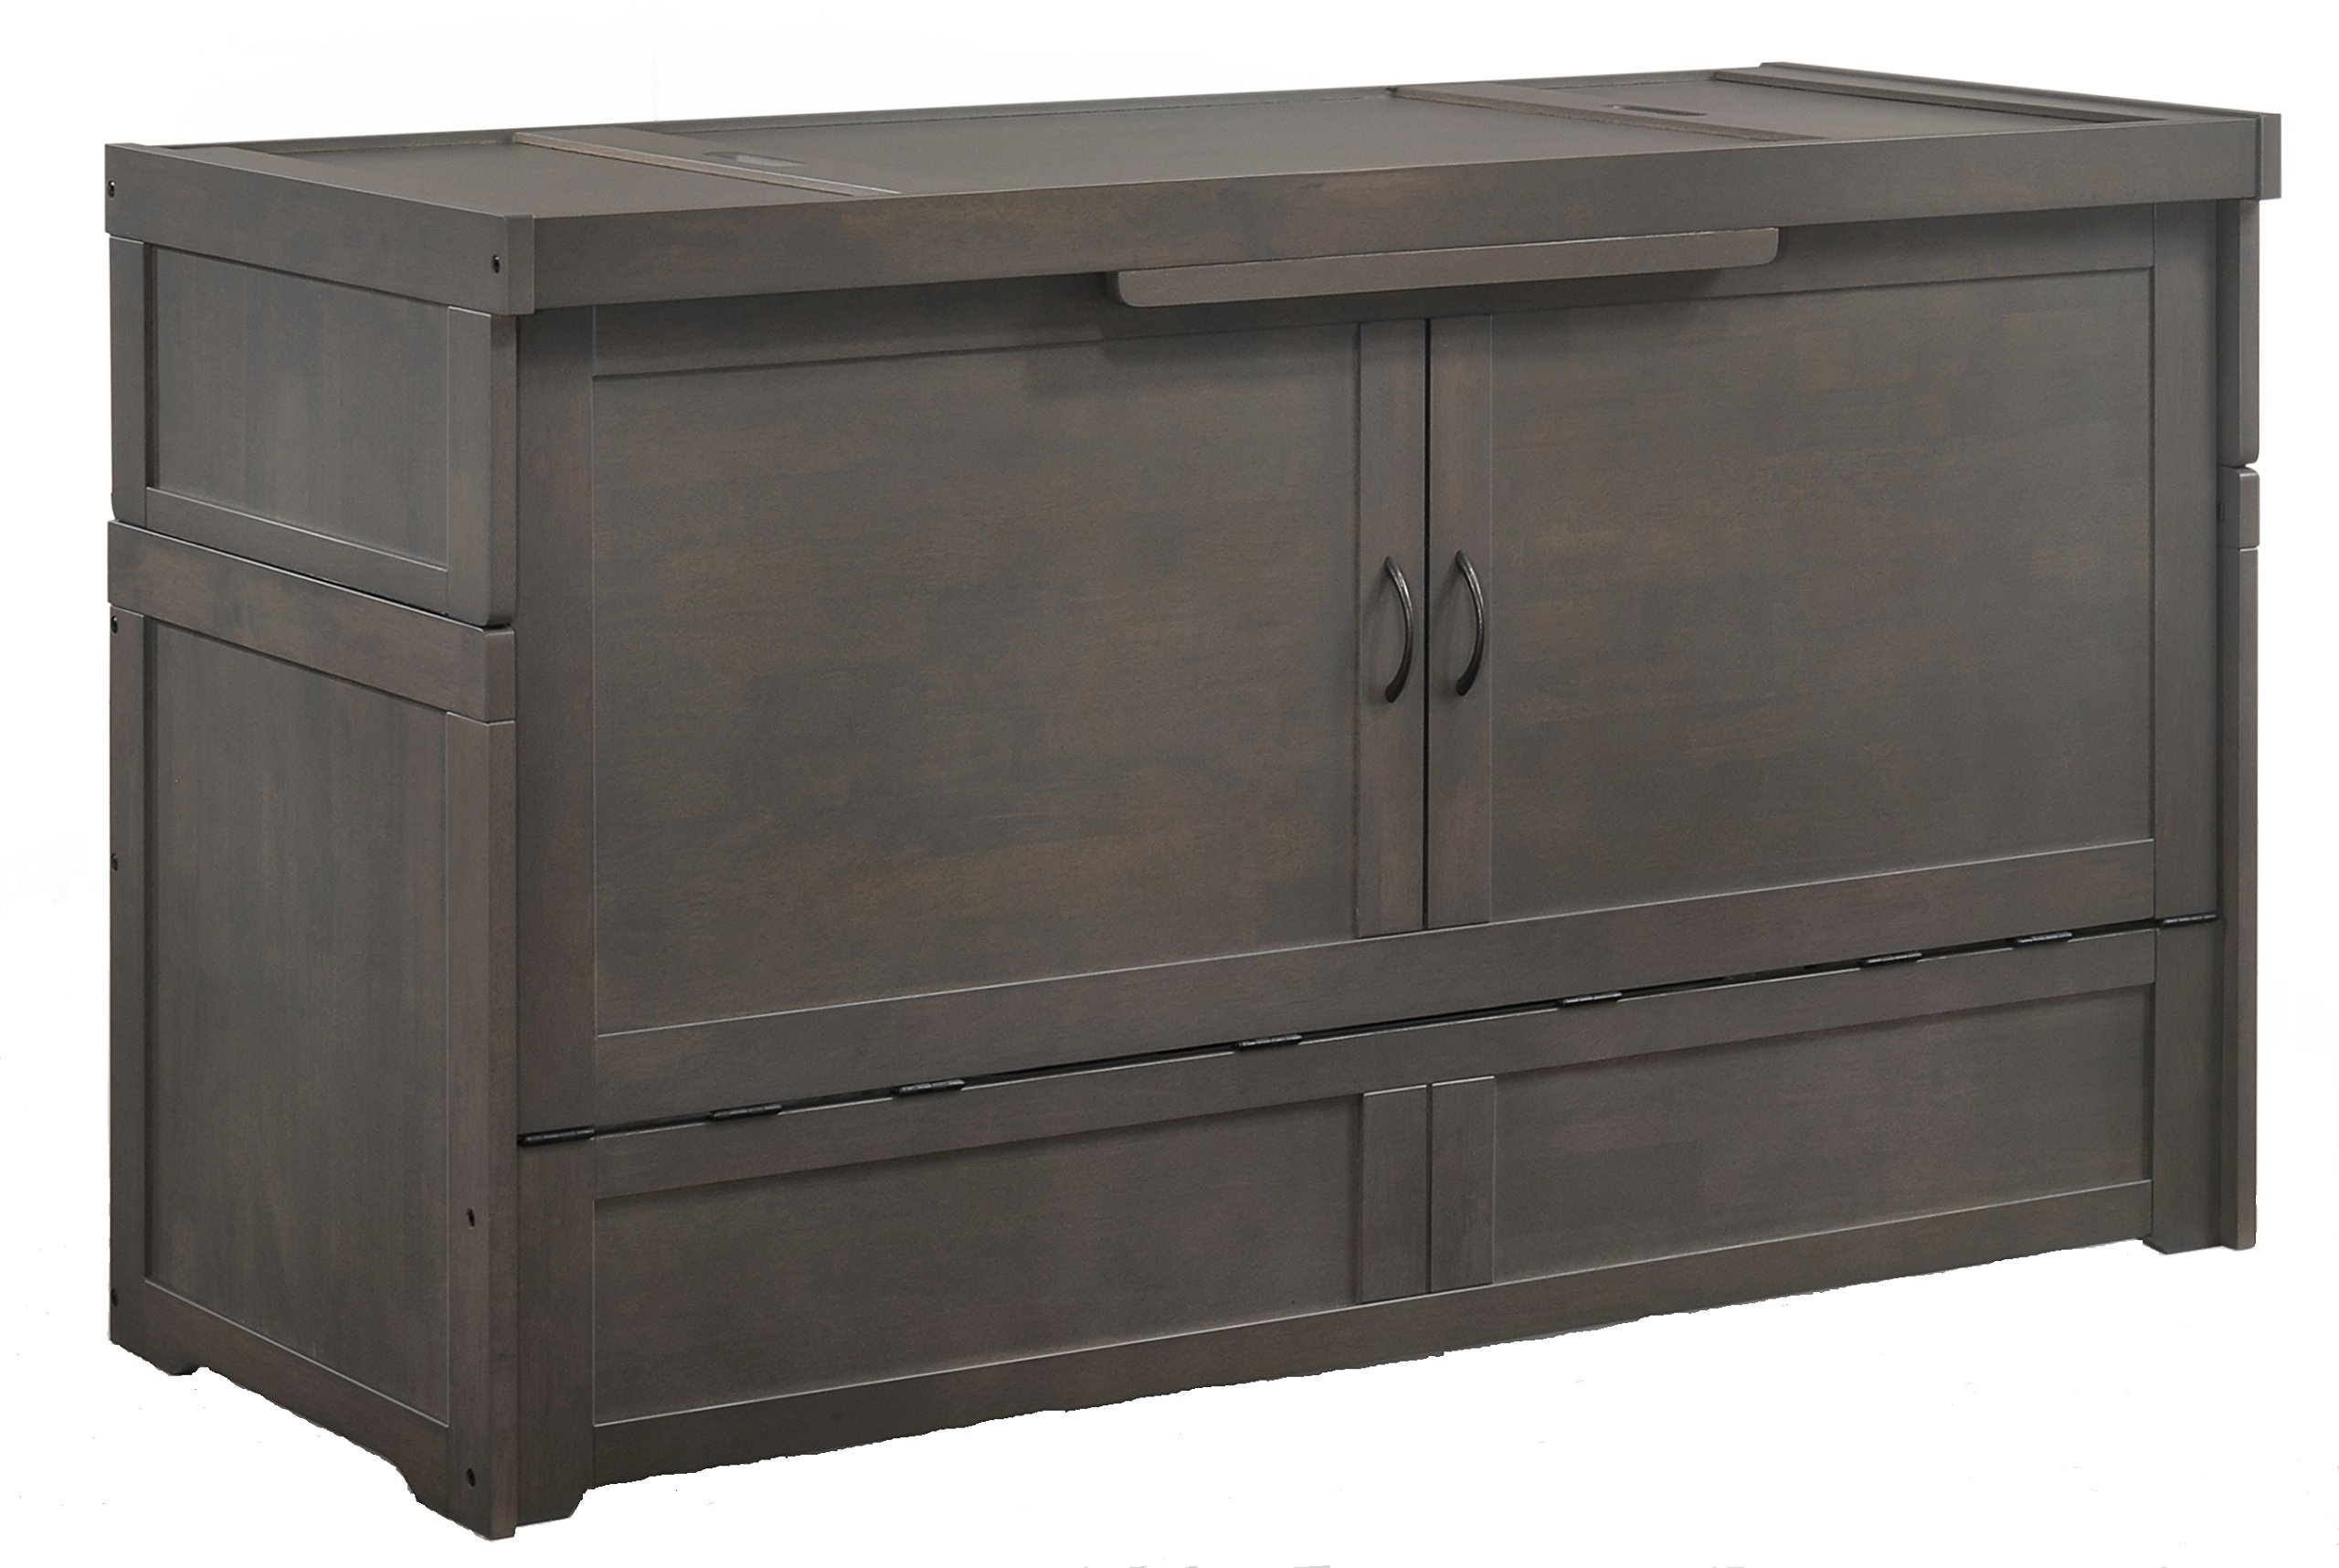 SDS Murphy Cube Queen Cabinet Bed Fully Assembled (Stonewash) by Night & Day